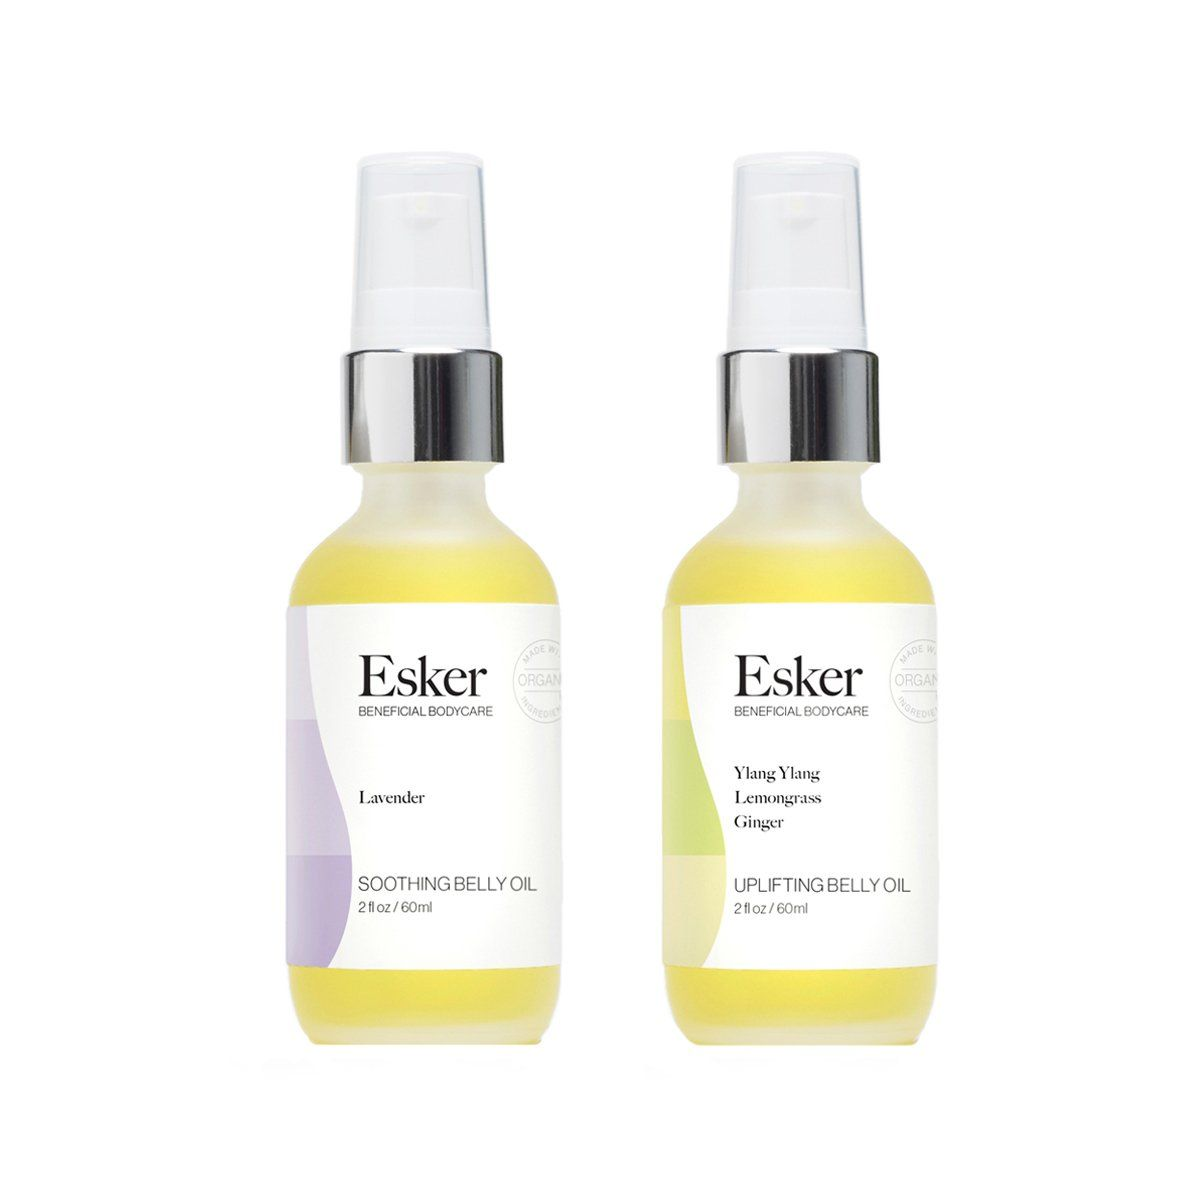 The Belly Oil Duo from Esker is the perfect body care gift for mamas-to-be. This pair of clean, nontoxic and organic botanical oils are created specifically for pre and postpartum skin. These gently scented, non-greasy oils help moisturize and fade stretch marks, as well as prevent new ones from forming. Uplifting Belly Oil is perfect to use in the morning or for an afternoon pick-me-up while Soothing Belly Oil with lavender works beautifully to relax body and mind before bed. | Esker Belly Oil